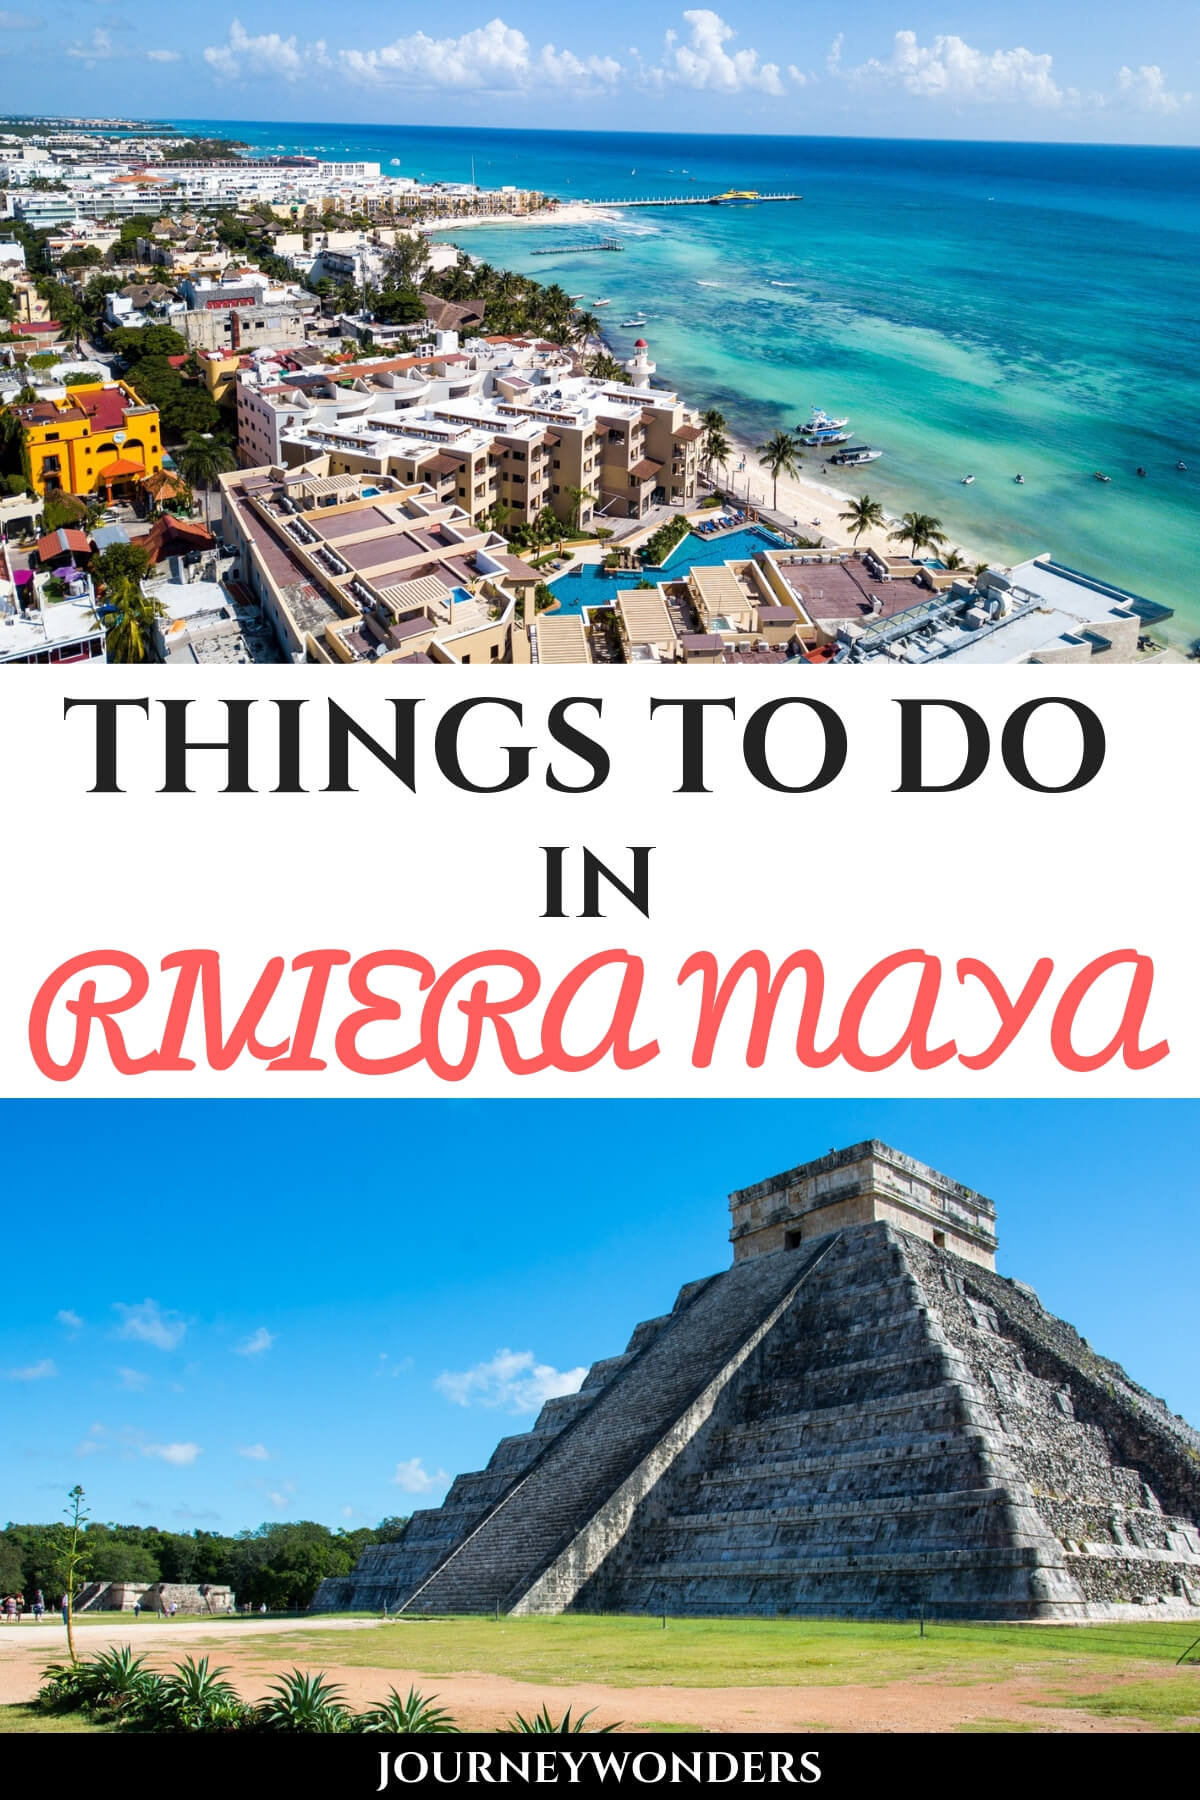 Things to do in #RivieraMaya #Mexico #Cancun #Tulum #PlayadelCarmen #Cenotes #ChichenItza